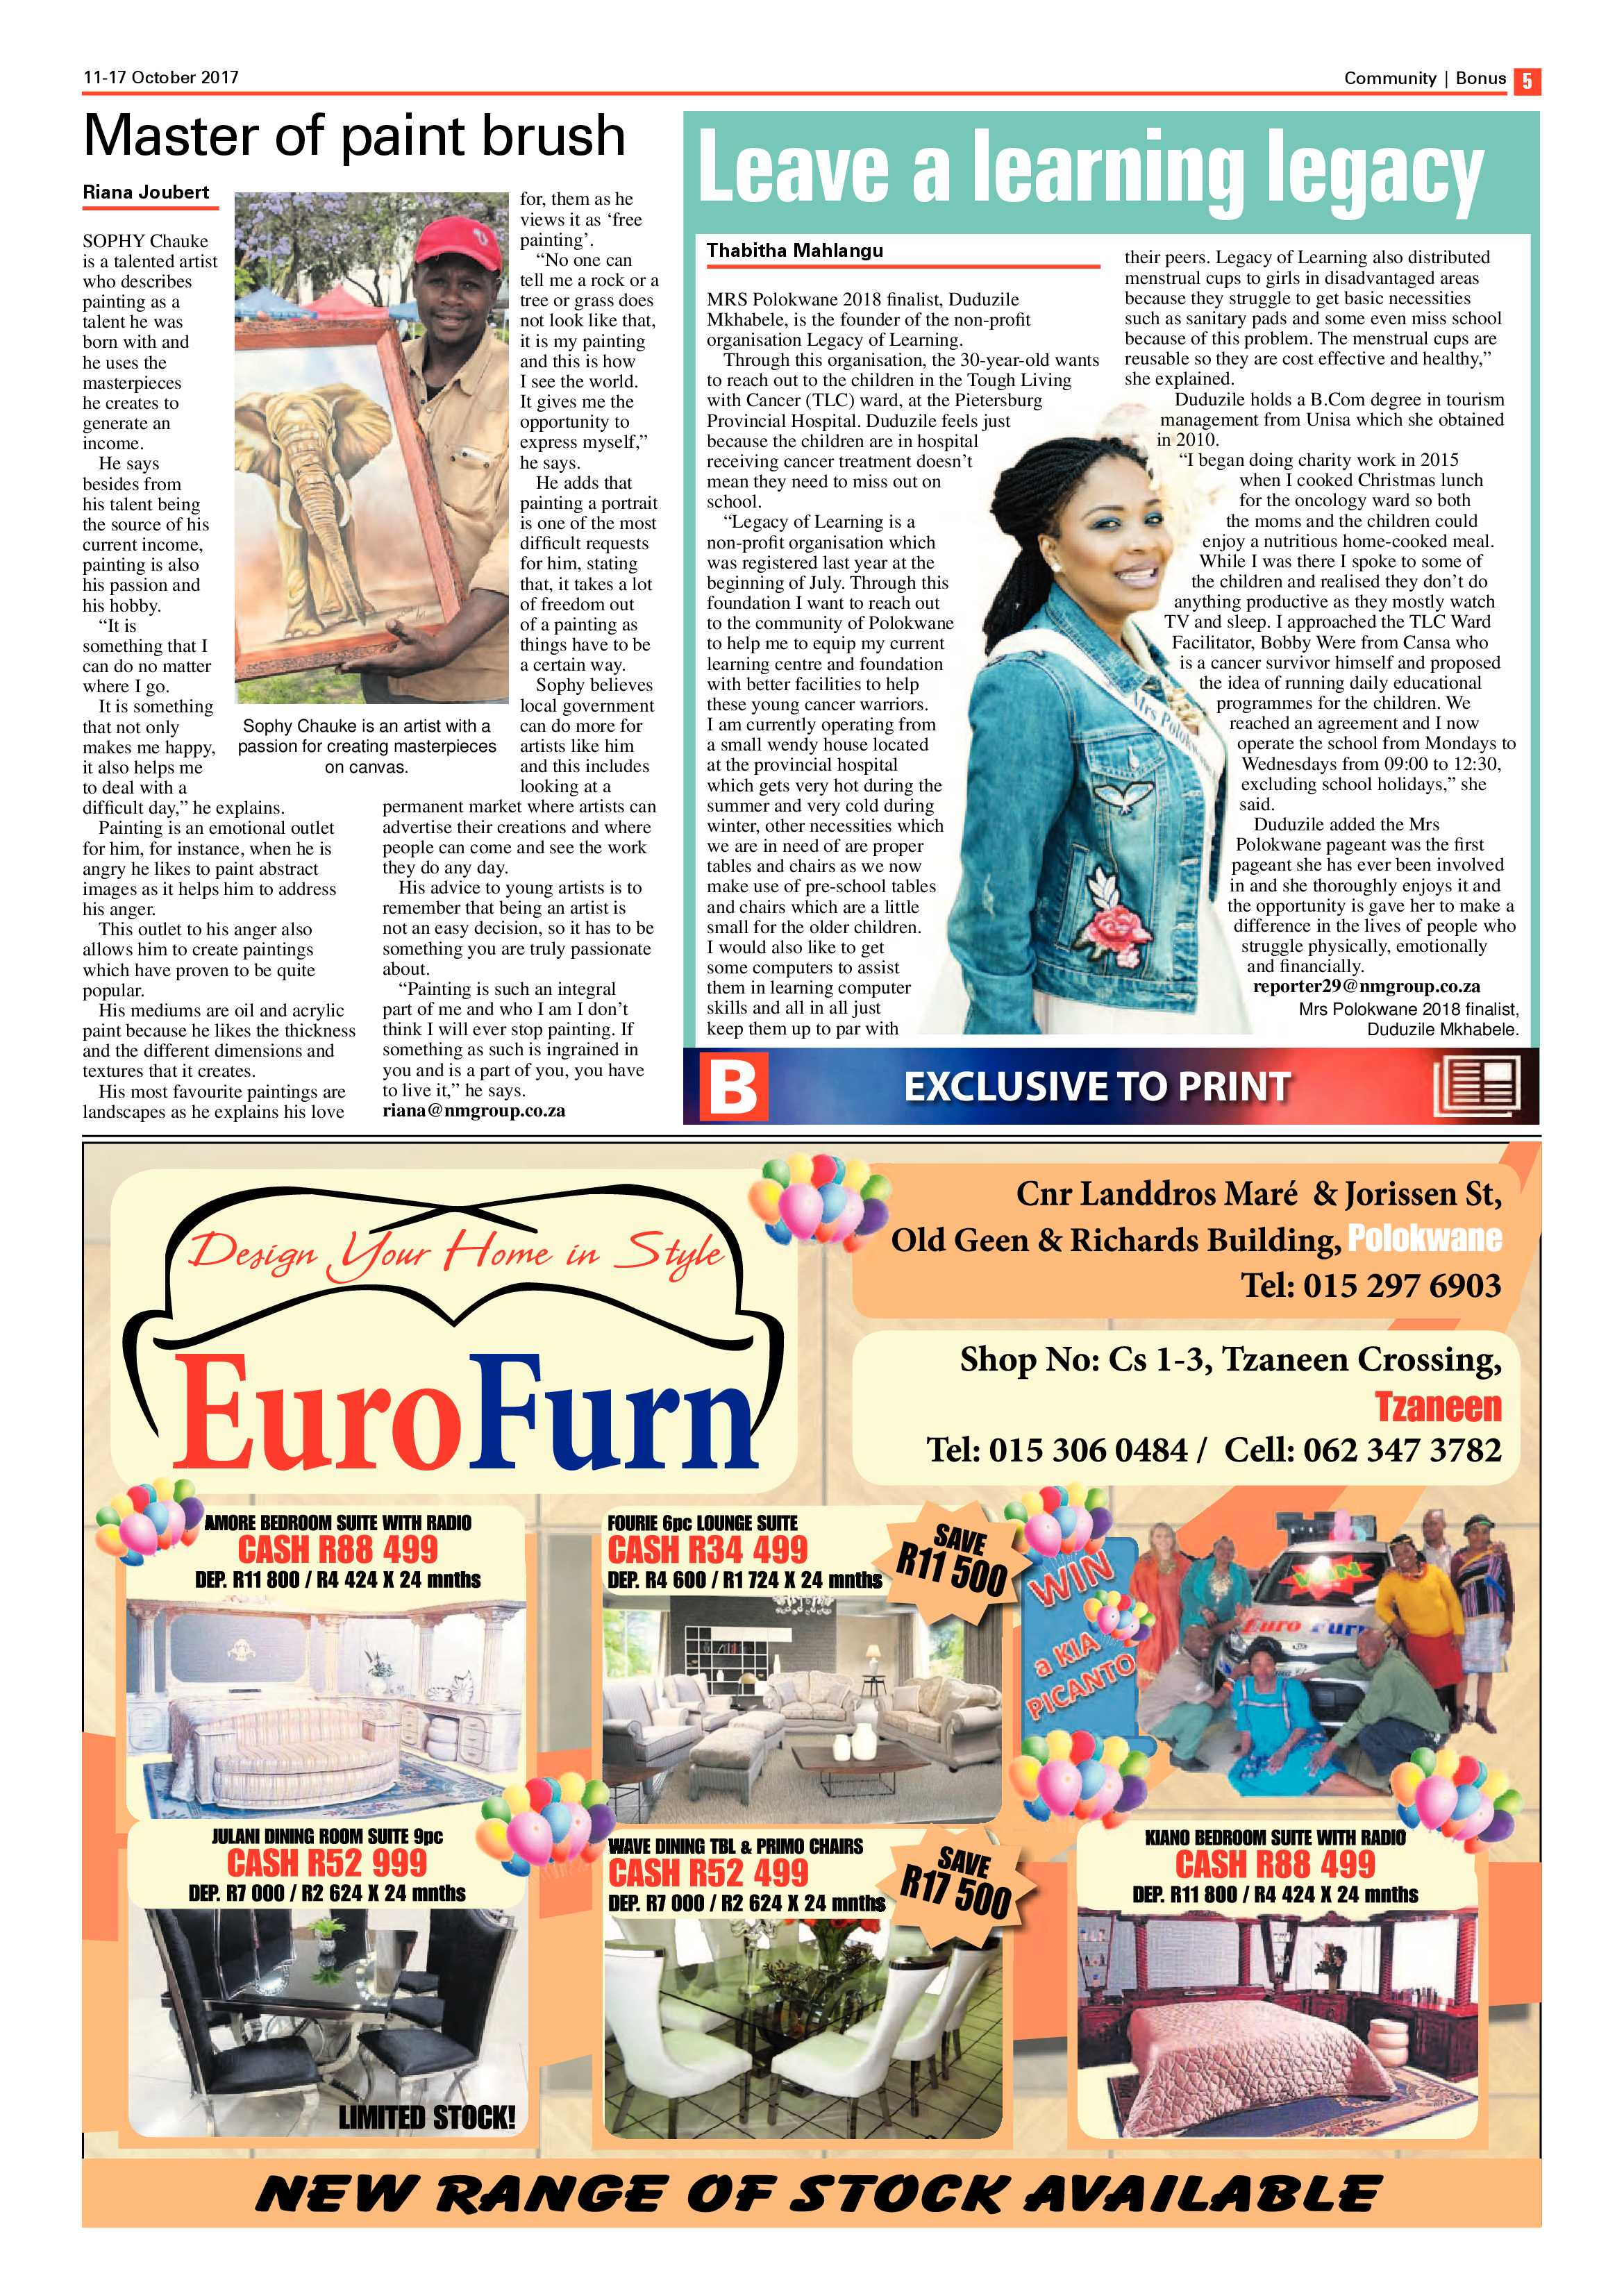 review-bonus-11-october-2017-epapers-page-5